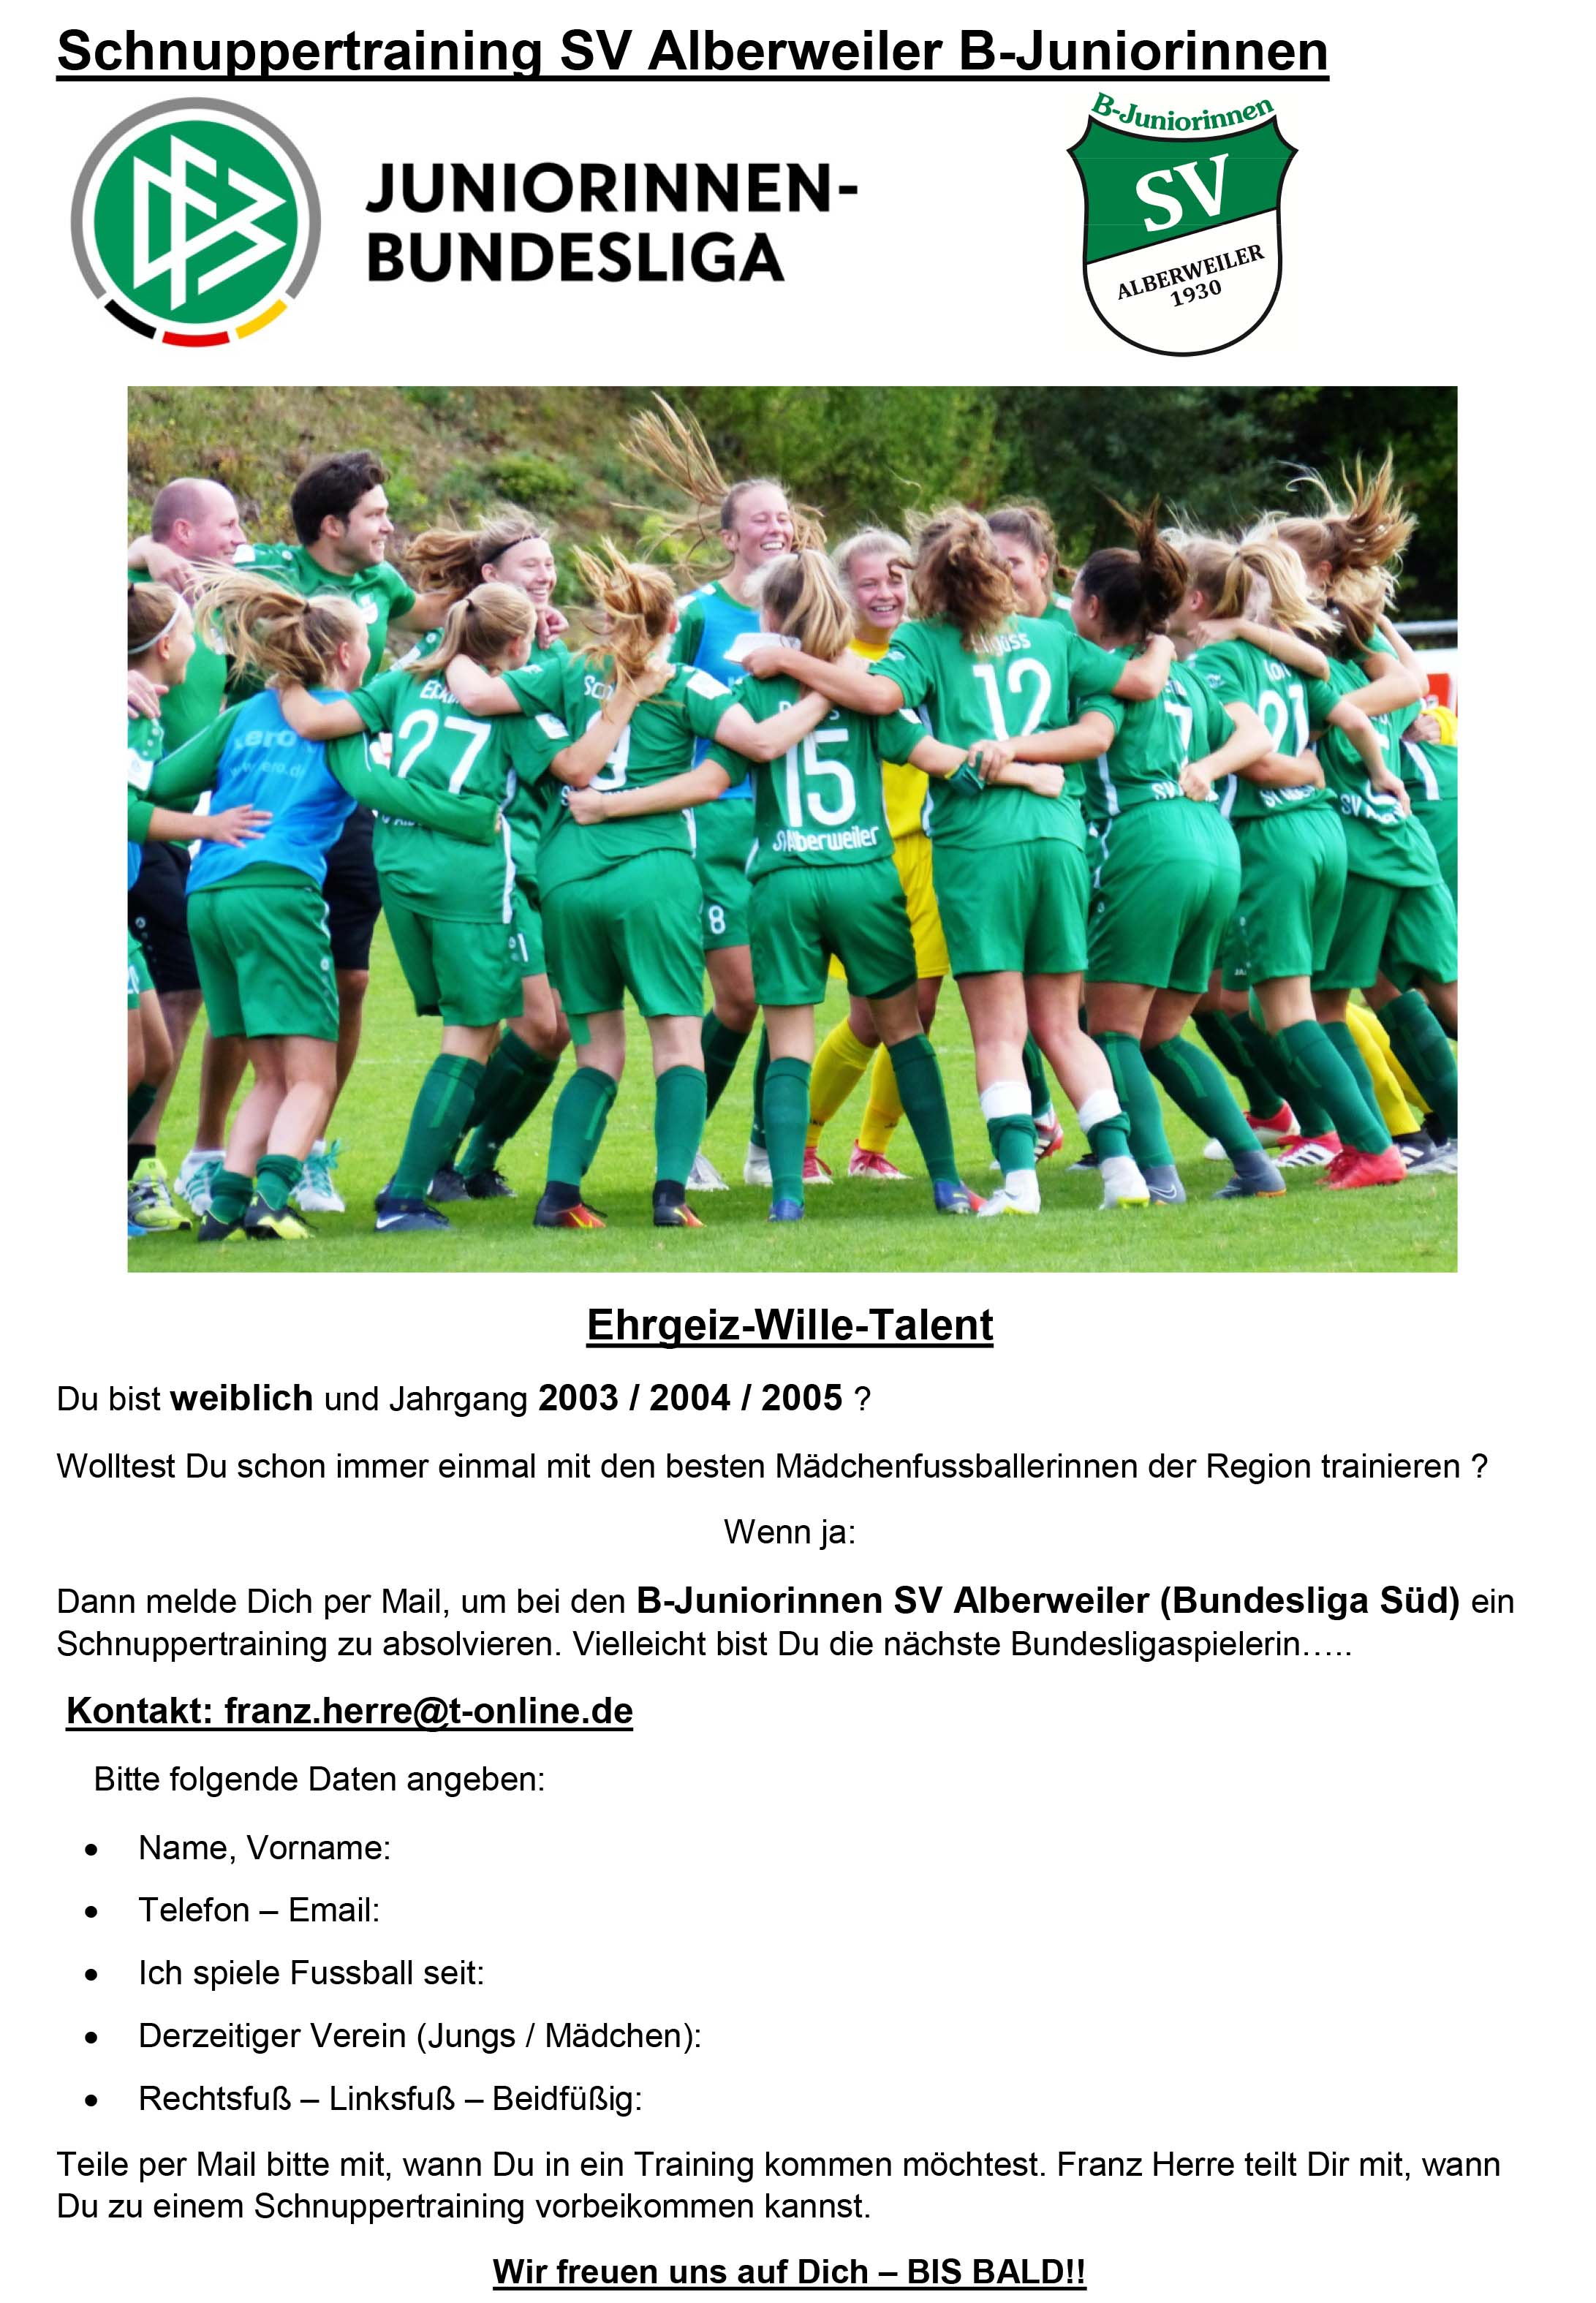 b juniorinnen talenttraining 2019